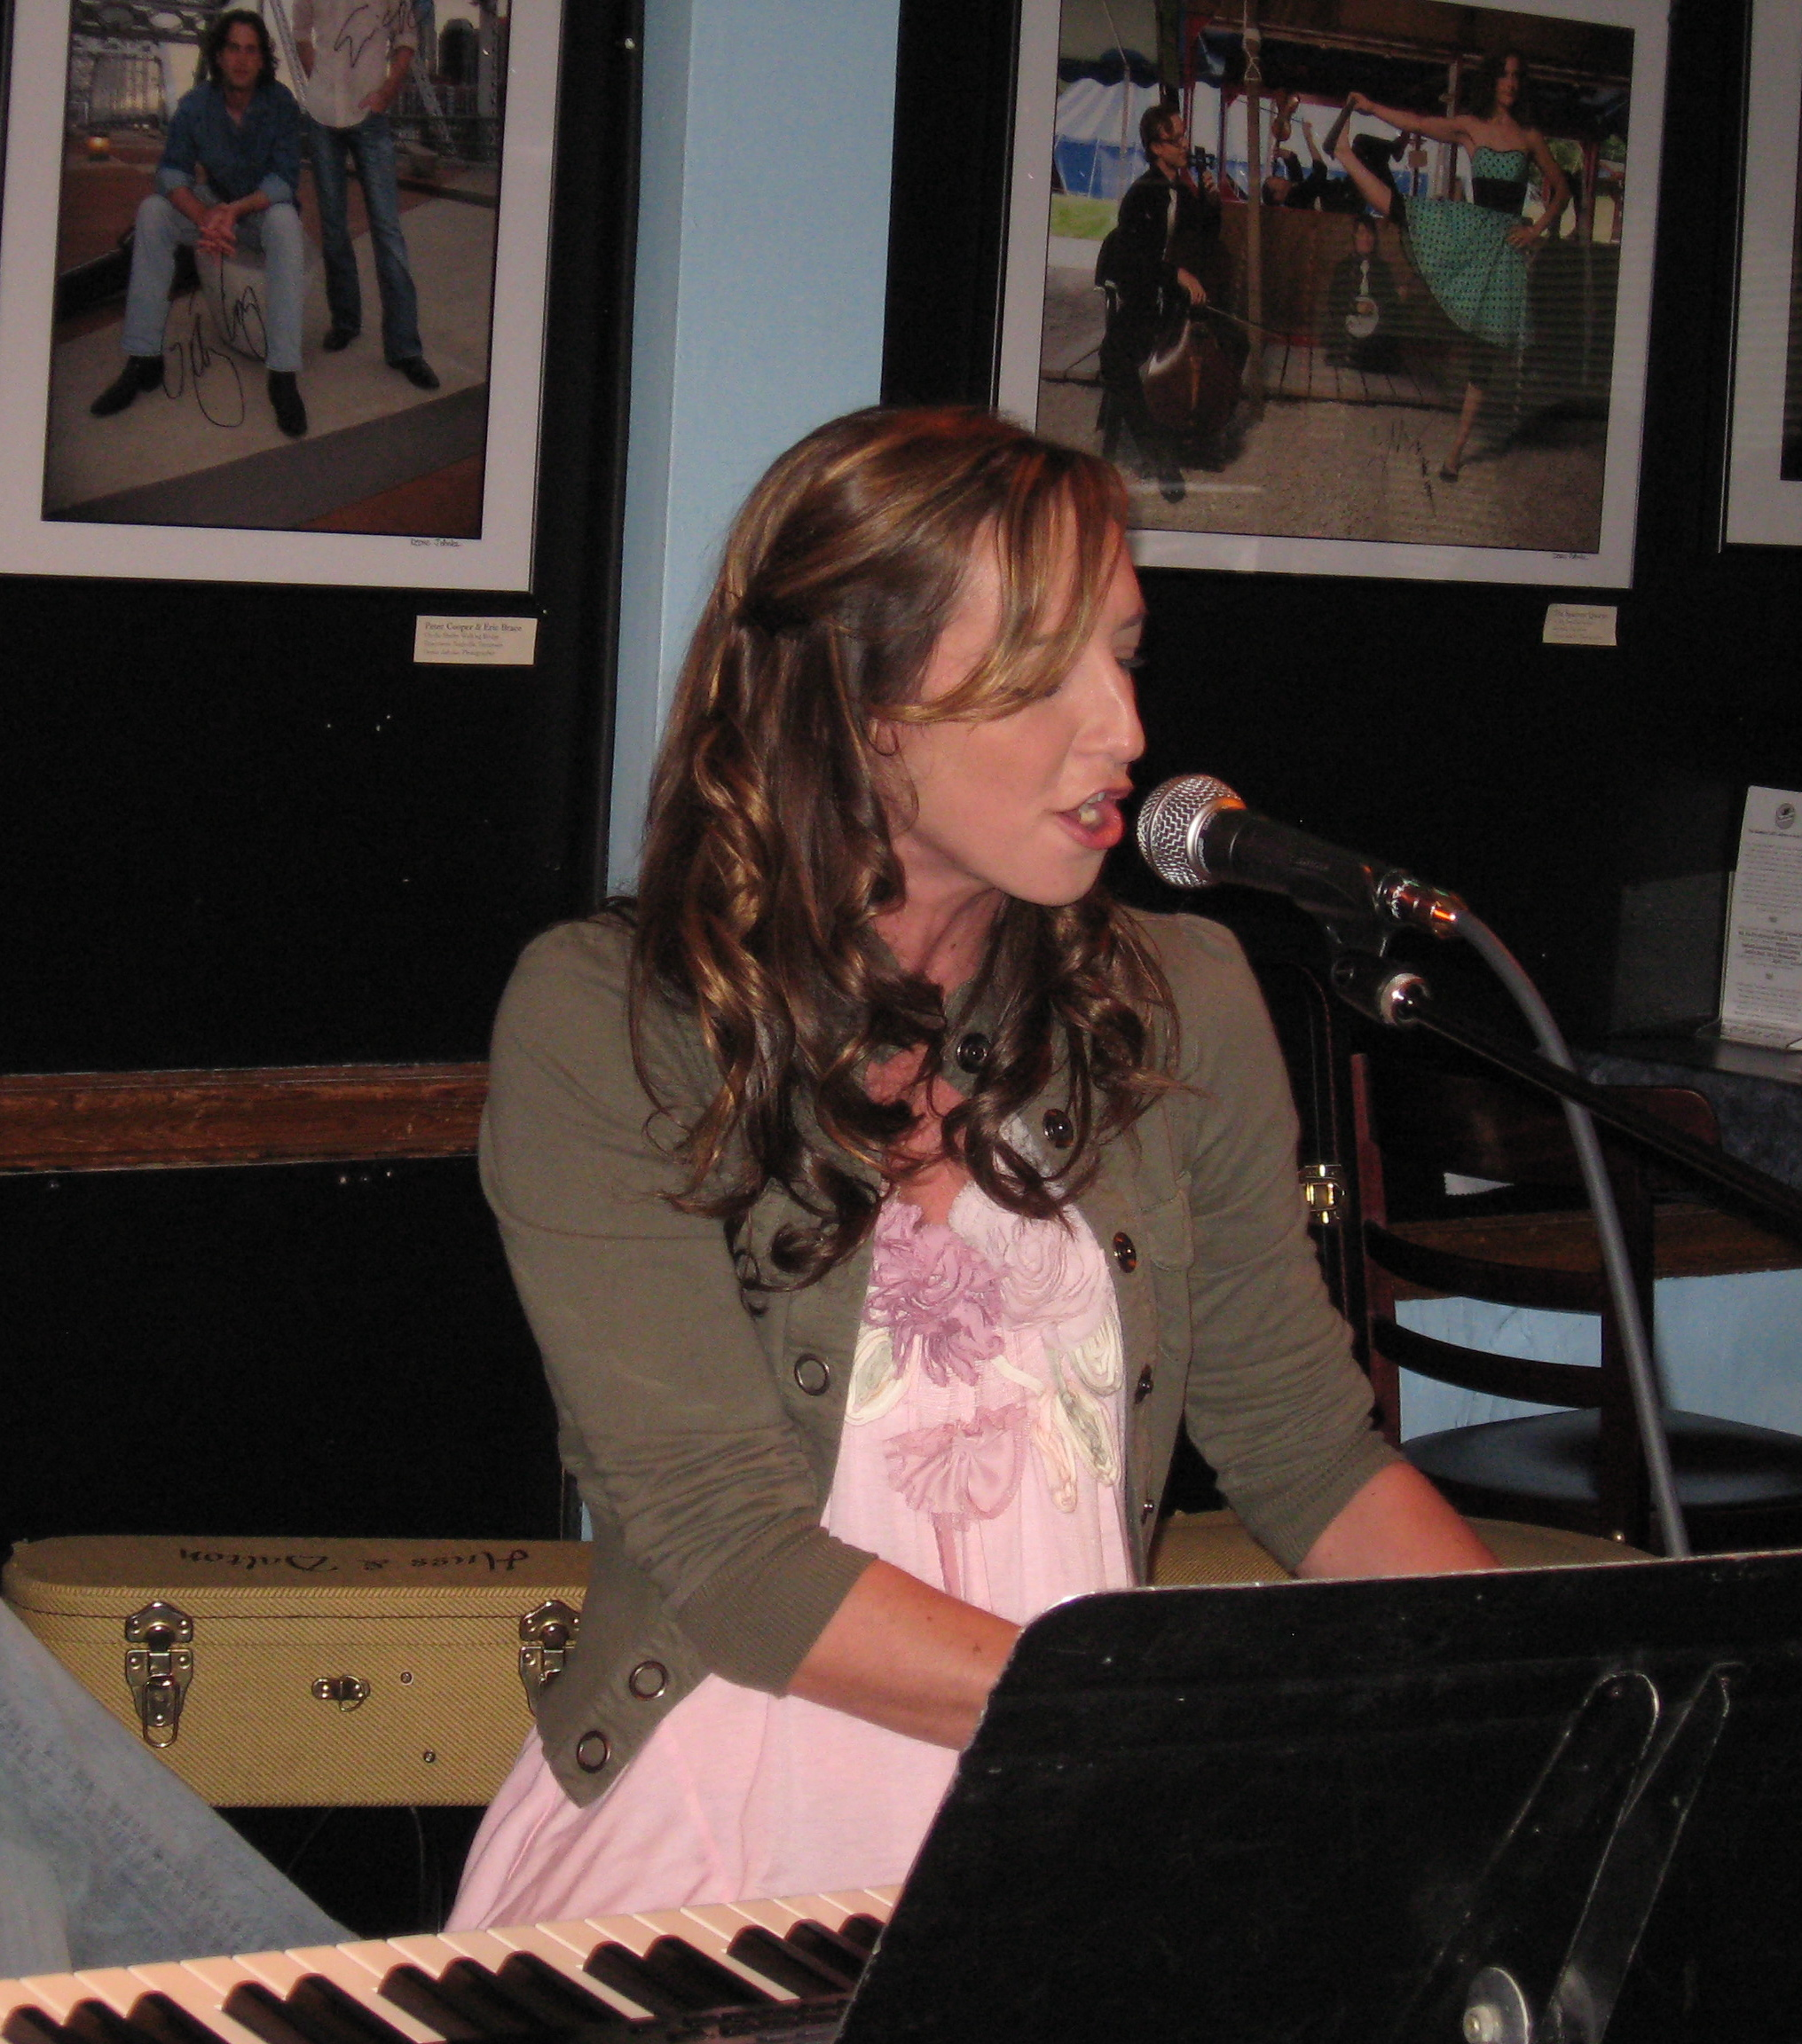 Jenn Bostic, USA Songwriting Competition Honorable Mention Winner